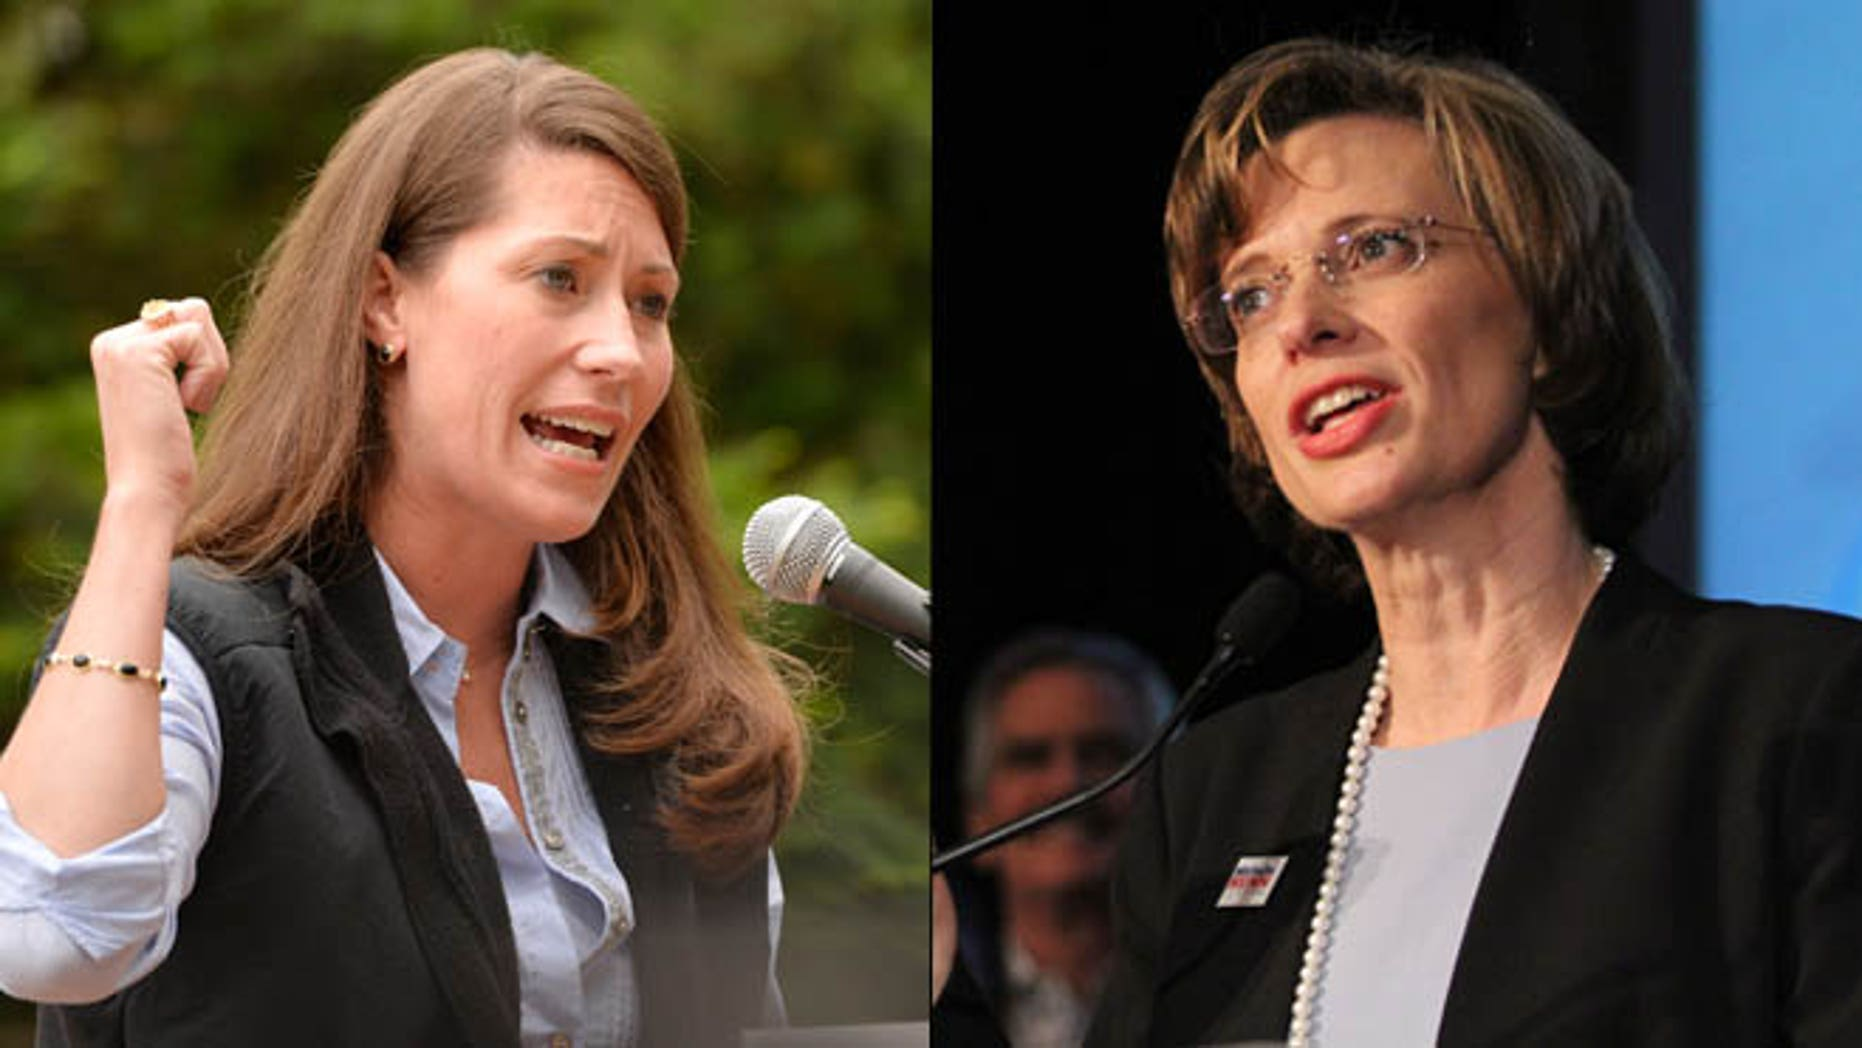 Shown here are Kentucky Senate candidate Alison Lundergan Grimes, left, and Georgia Senate candidate Michelle Nunn.